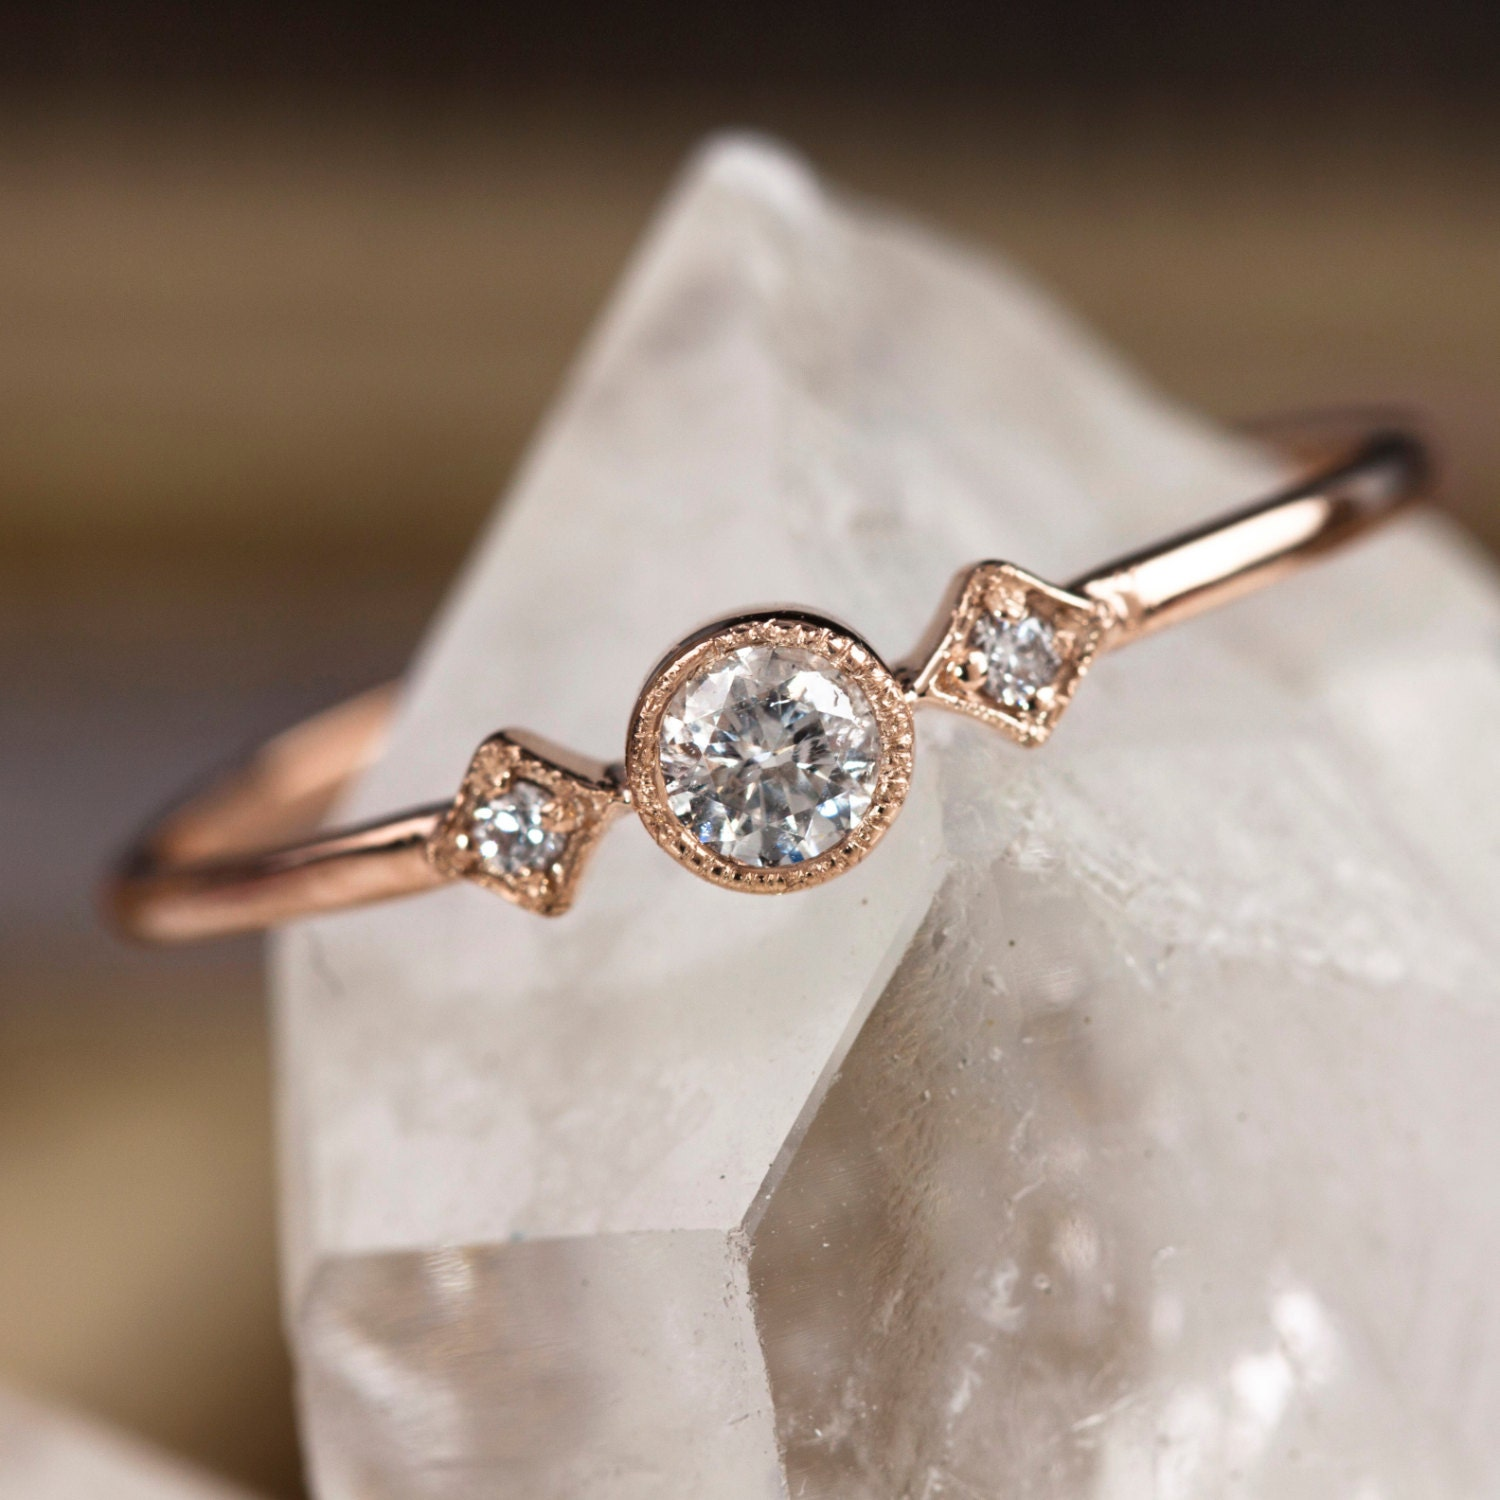 Rose gold engagement ring 14k solid rose gold ring .15ctw